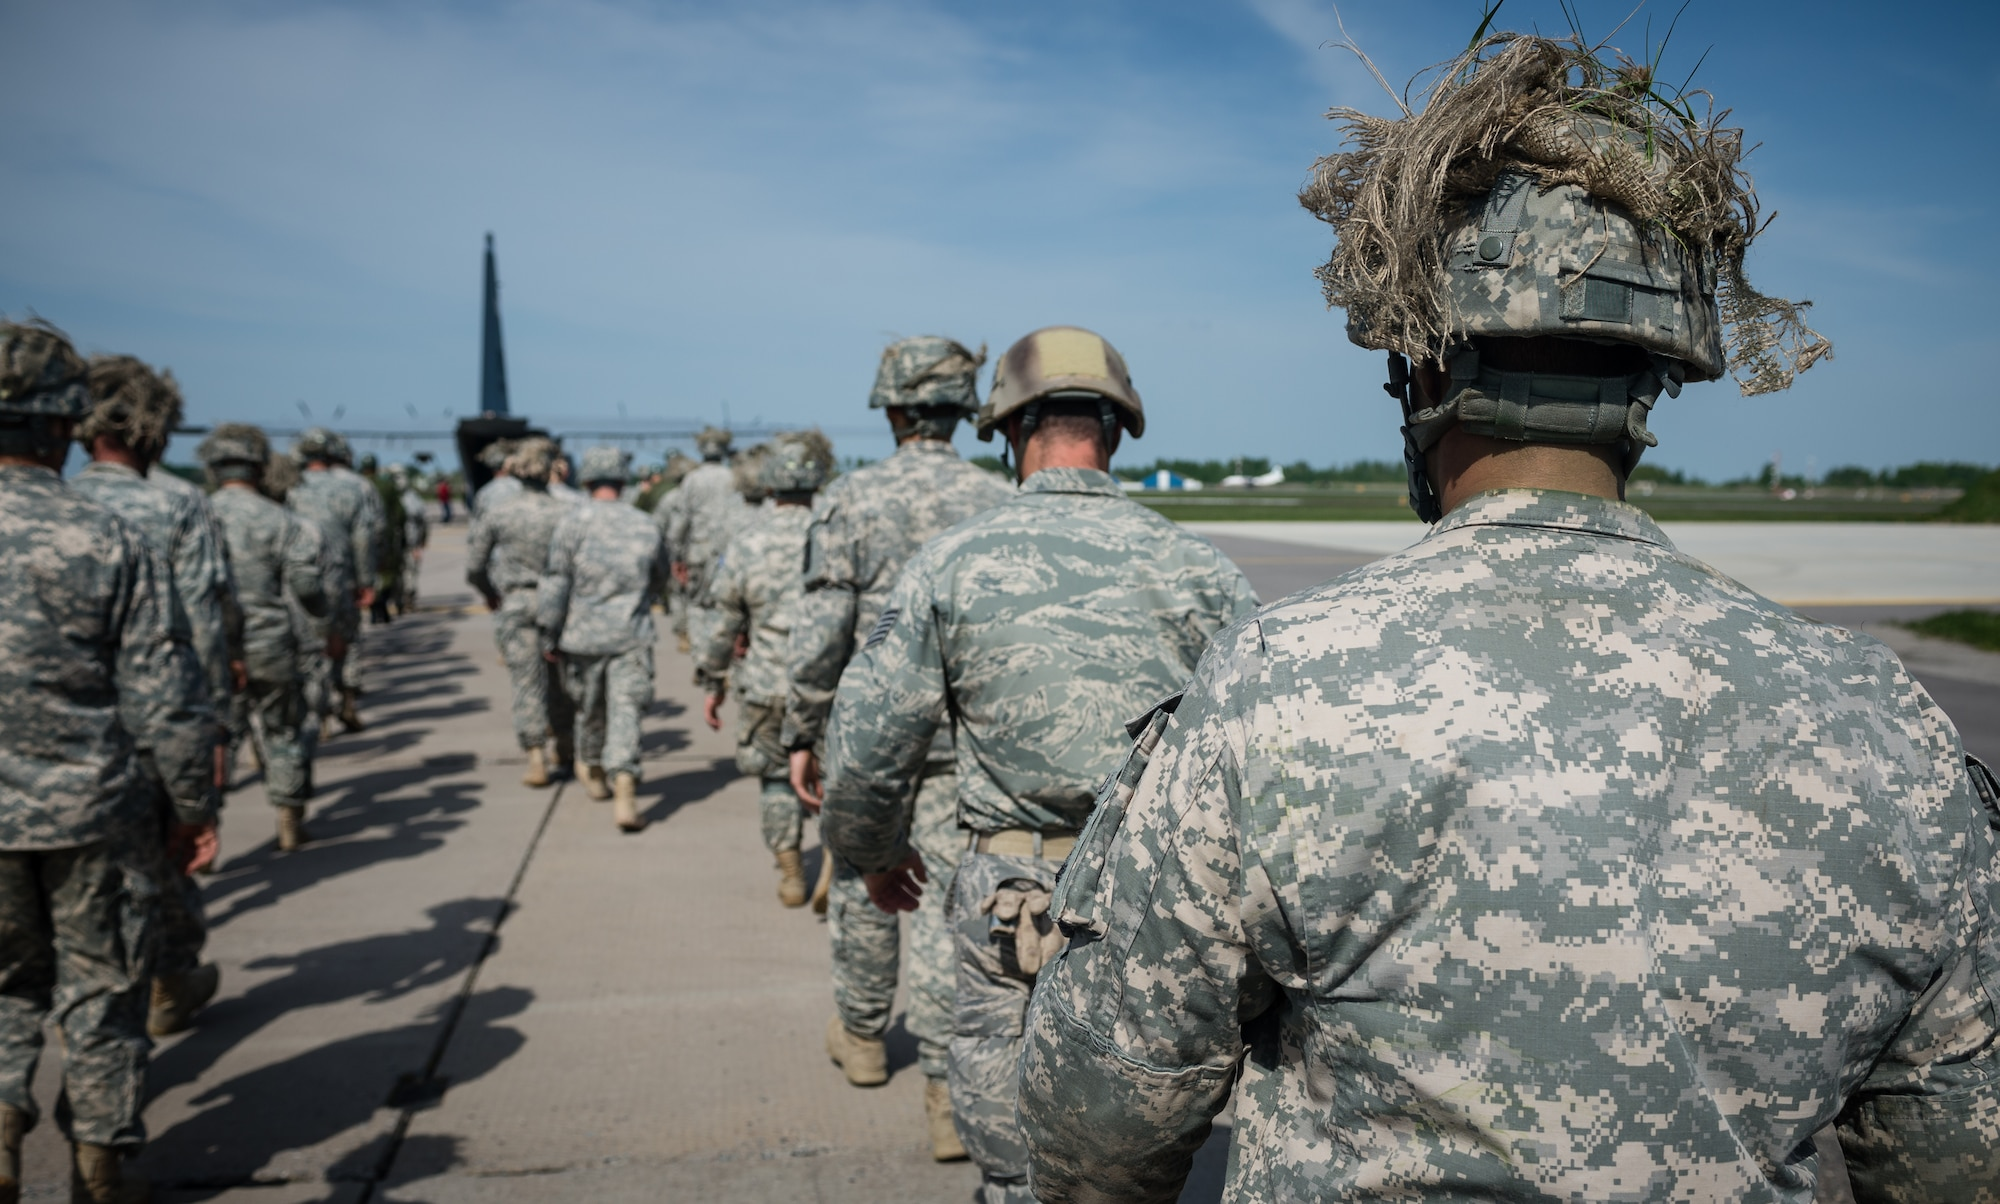 U.S. Airmen and Soldiers prepare to board a 37th Airlift Squadron C-130J Super Hercules alongside Lithuanian paratroopers at Šiauliai International Airport, Lithuania, May 17, 2014. Pilots and loadmasters from the 37th AS alongside an 86th Aircraft Maintenance Squadron crew chief spent four days across three Baltic countries assisting in personnel drops of allied partners and American service members. (U.S. Air Force photo/Airman 1st Class Jordan Castelan)